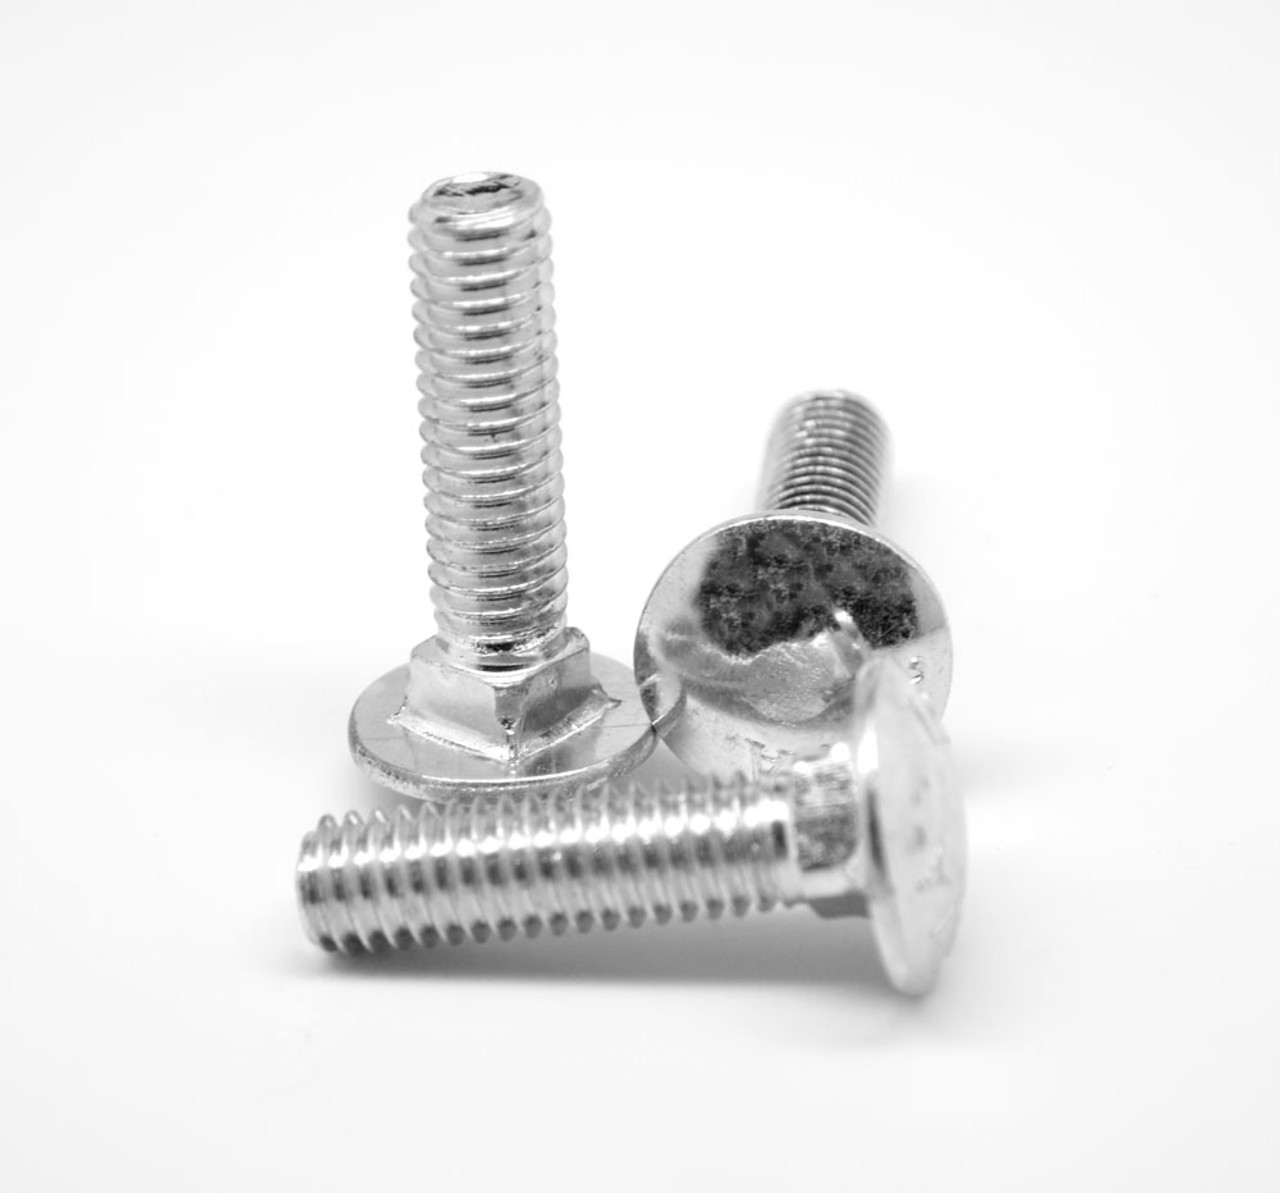 """#10-24 x 2 1/4"""" (FT) Coarse Thread A307 Grade A Carriage Bolt Low Carbon Steel Zinc Plated"""